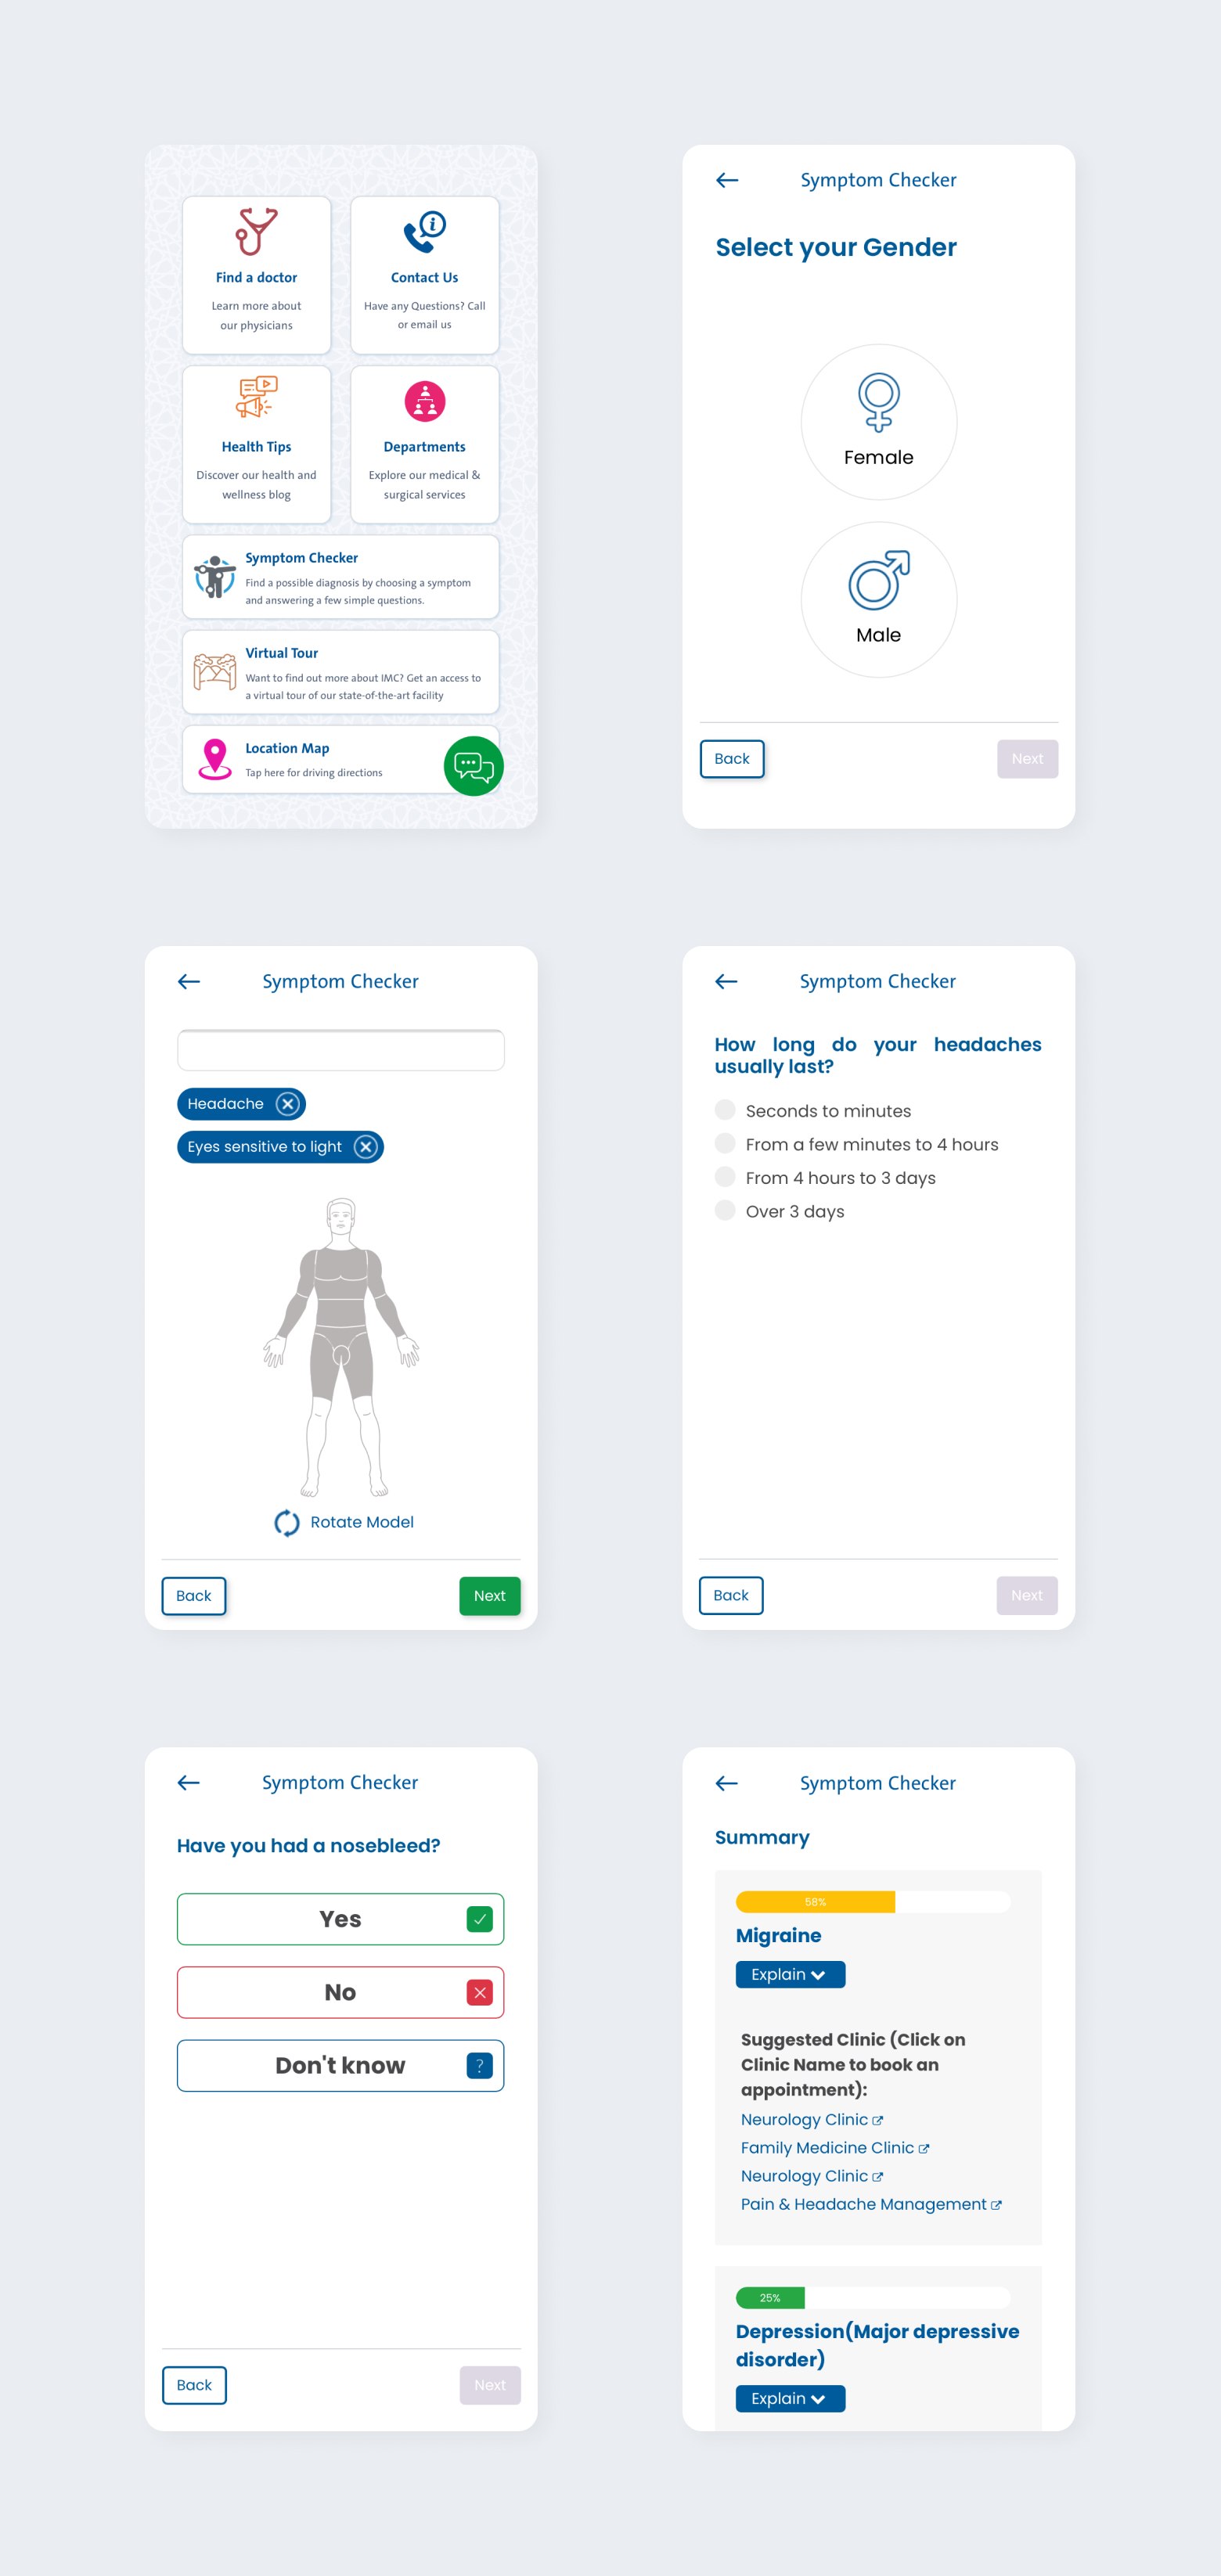 Key steps from the patient journey using the IMC's symptom checker.